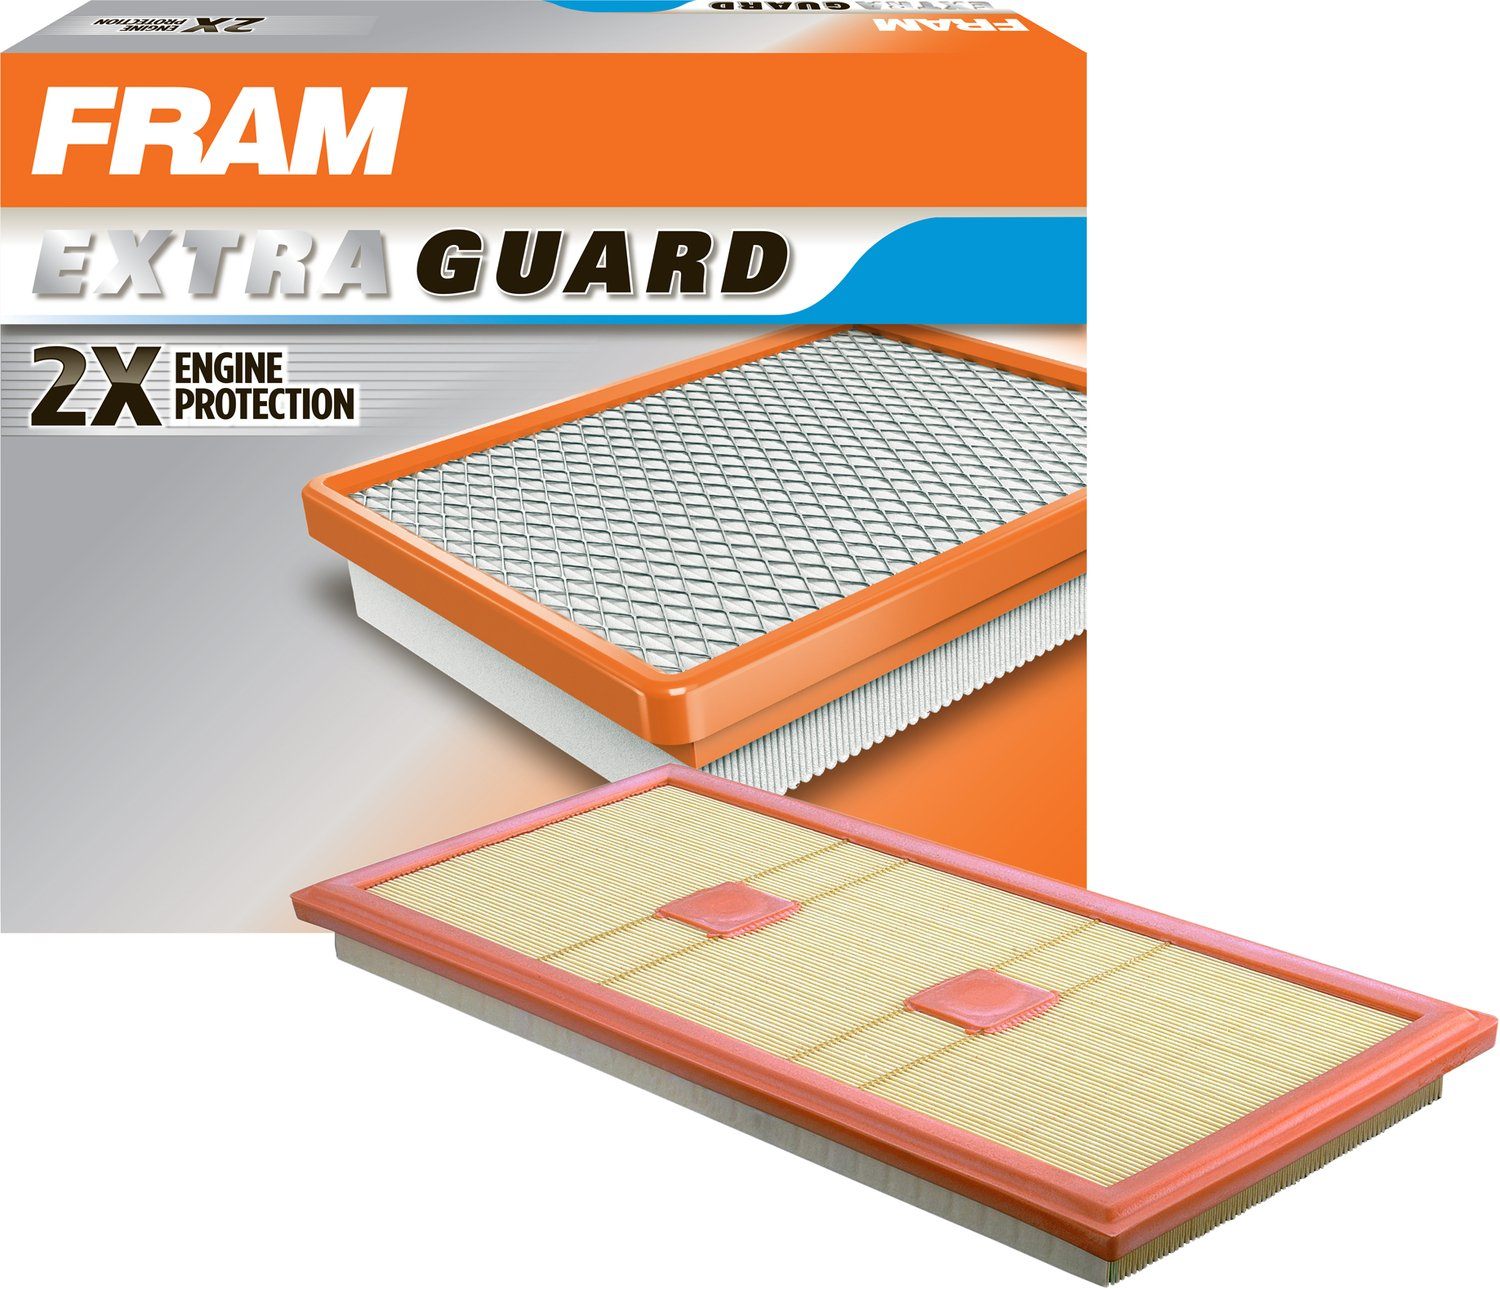 FRAM CA11439 Extra Guard Flexible Panel Air Filter